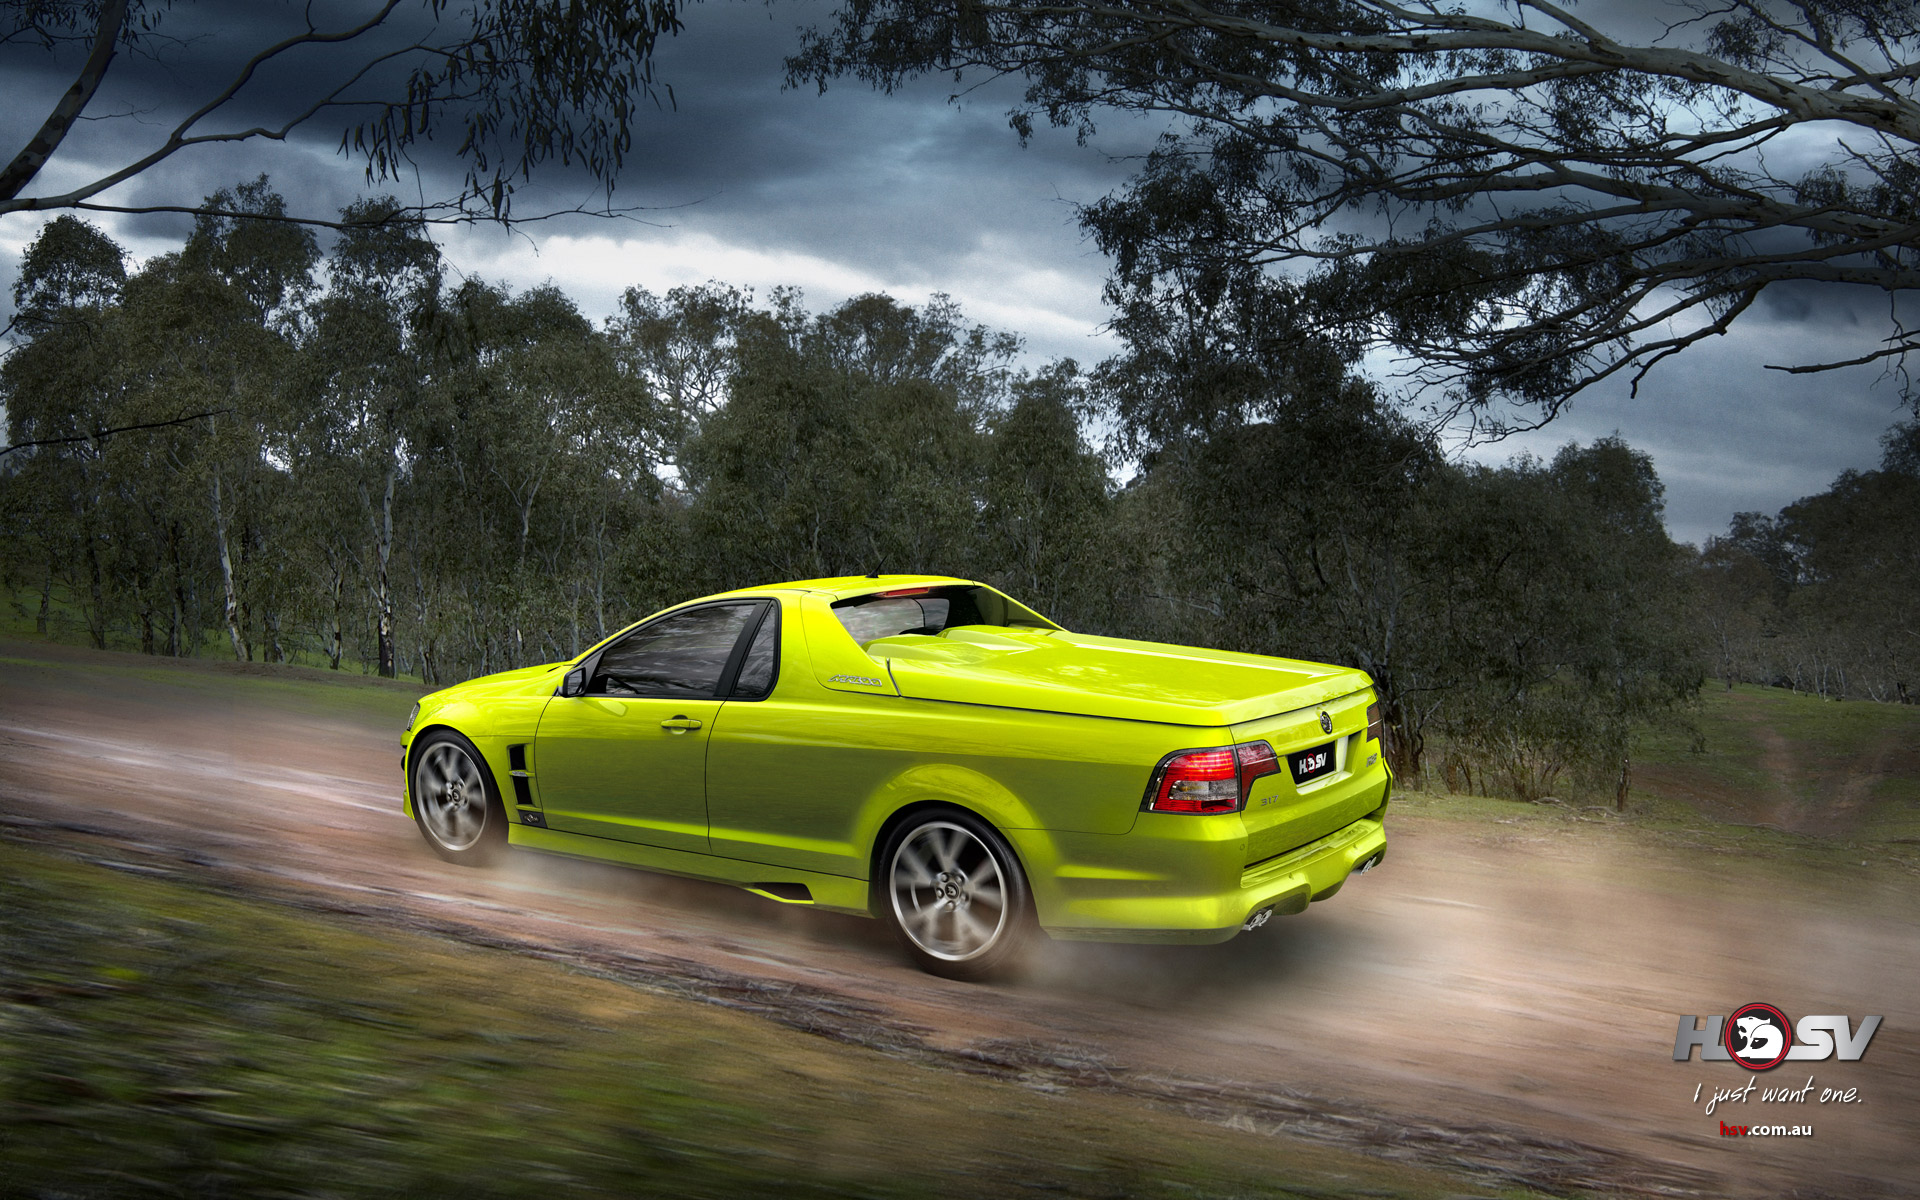 Download High quality E Series LS3 Maloo R8 HSV wallpaper / 1920x1200